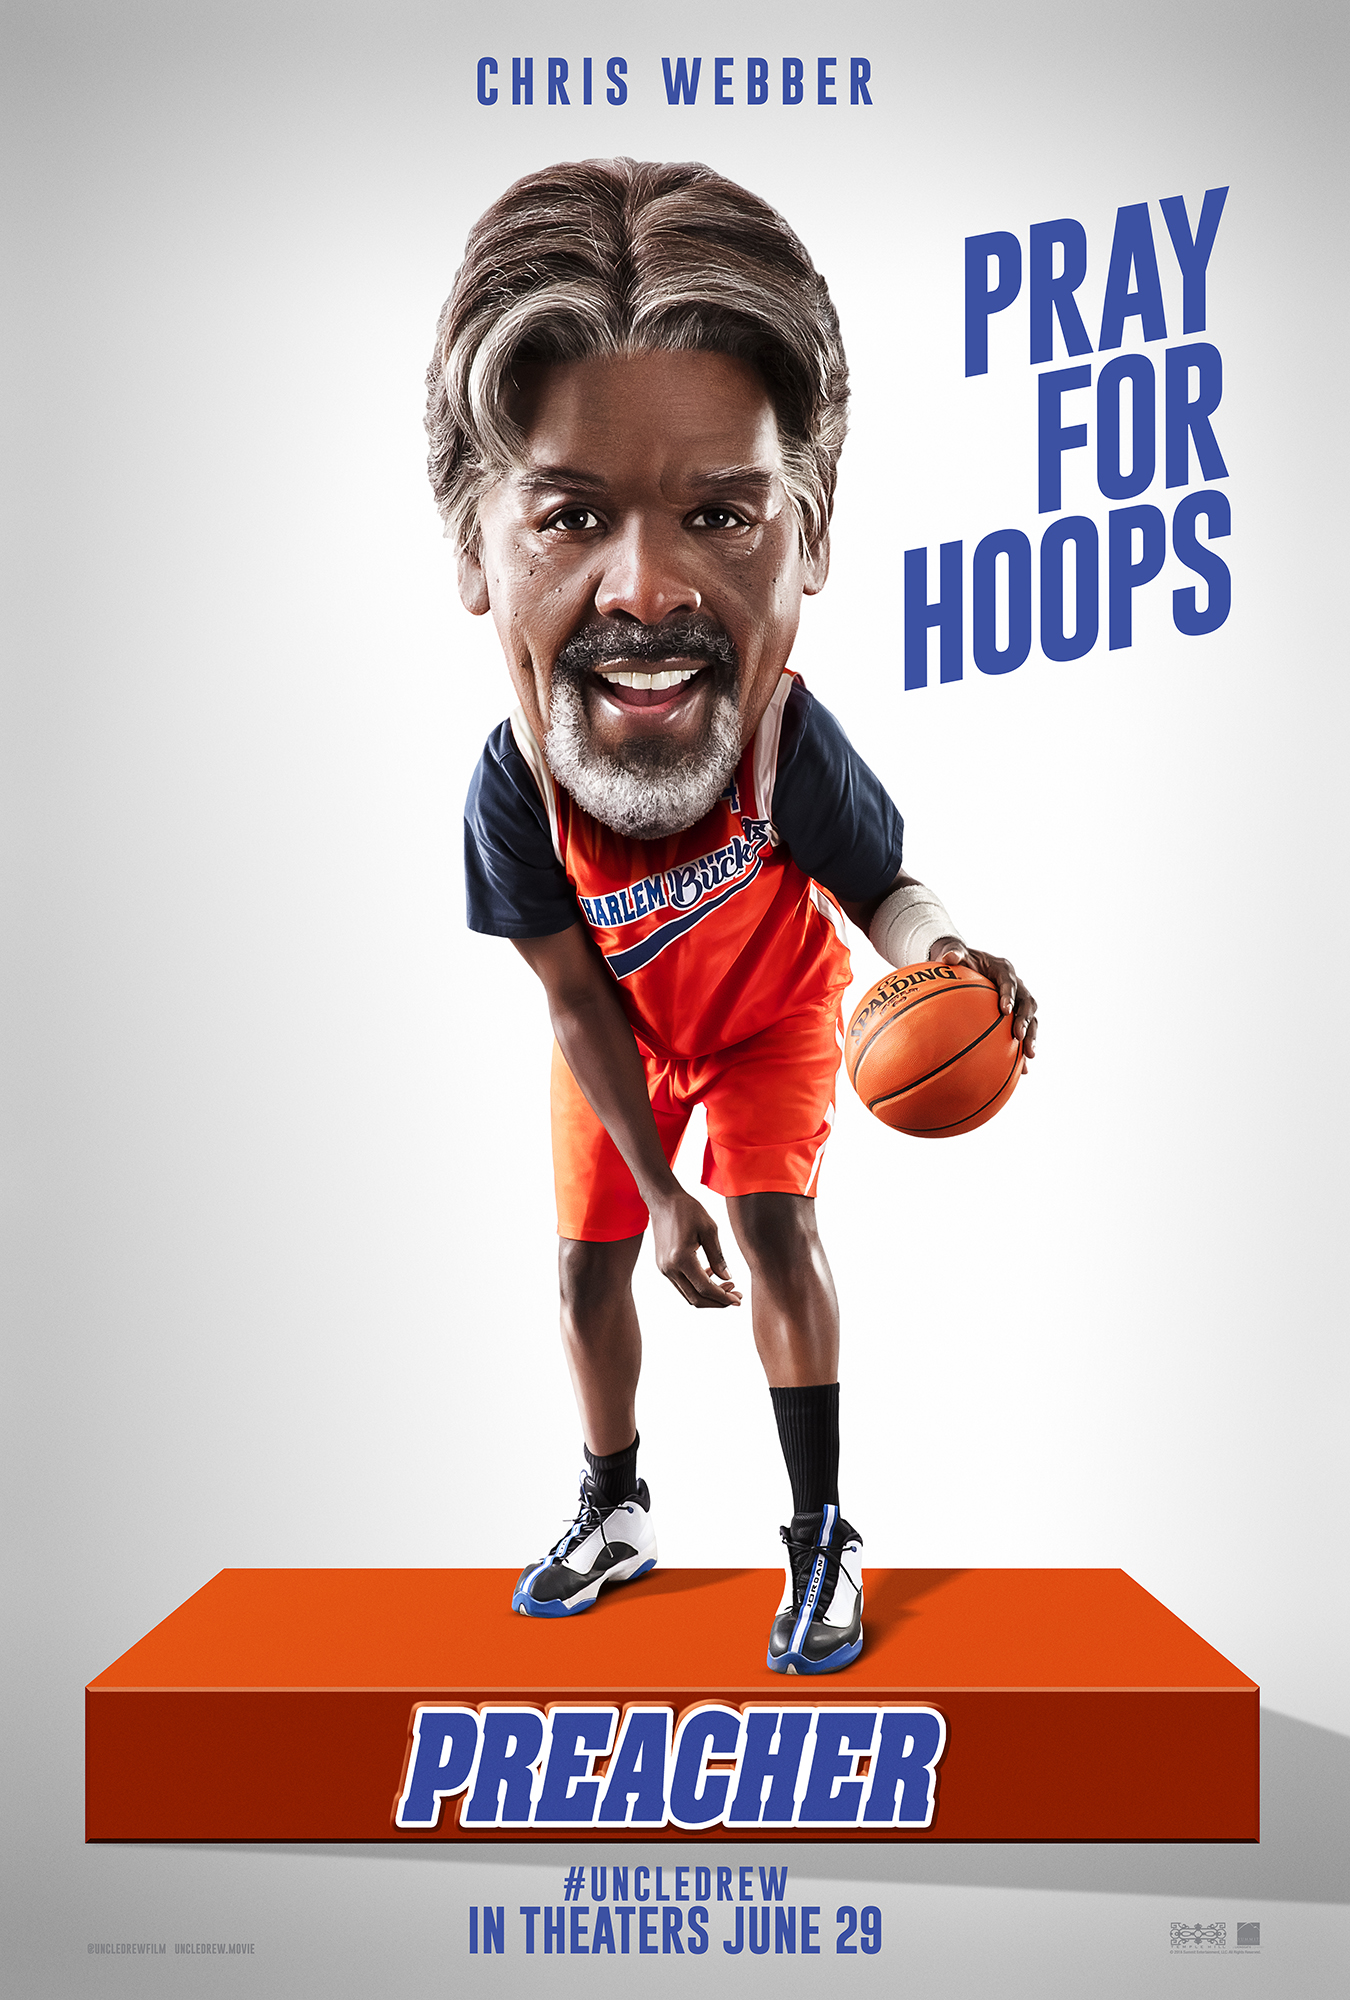 UncleDrew_Bobble_1Sht_Chris_Online_100dpi.jpg